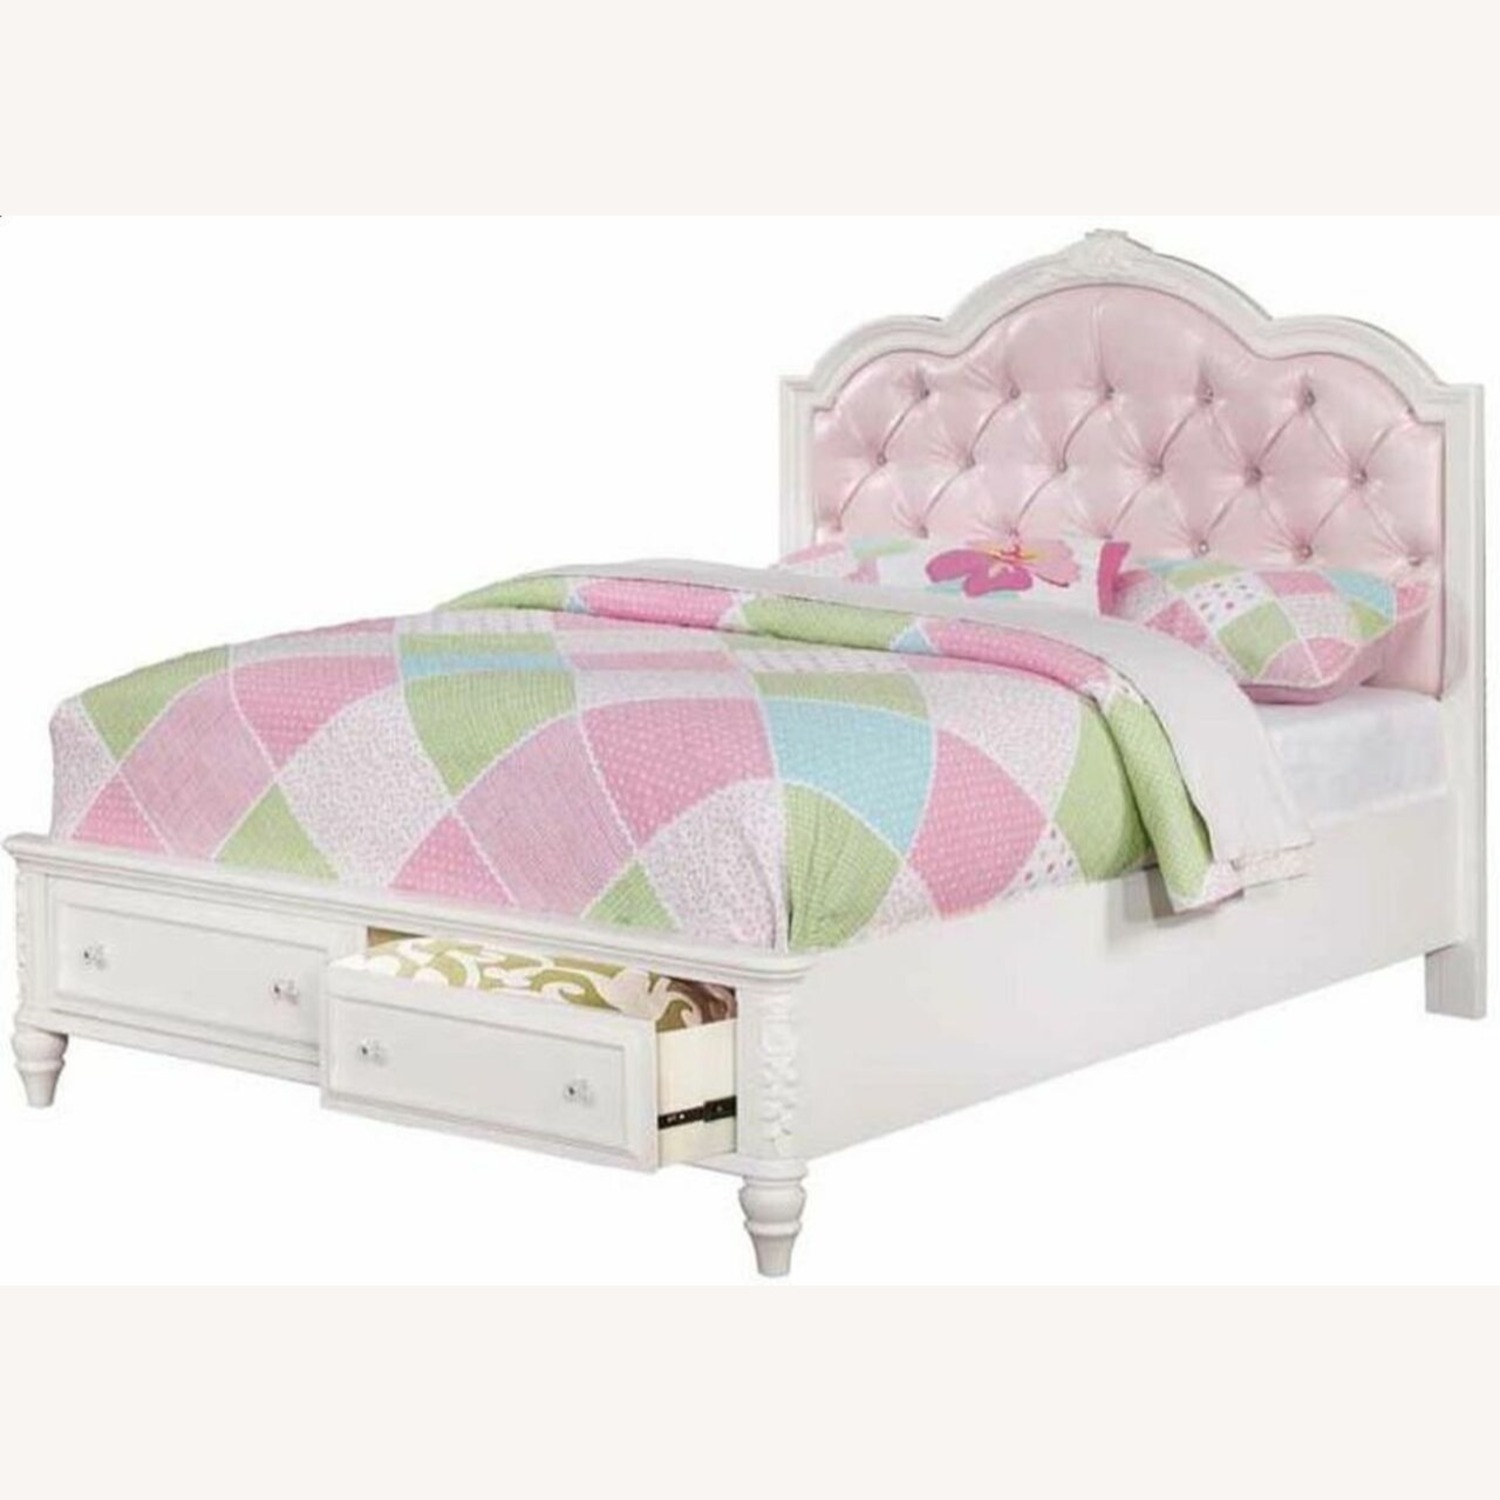 Twin Bed In White Finish W/ Pink Leatherette - image-1